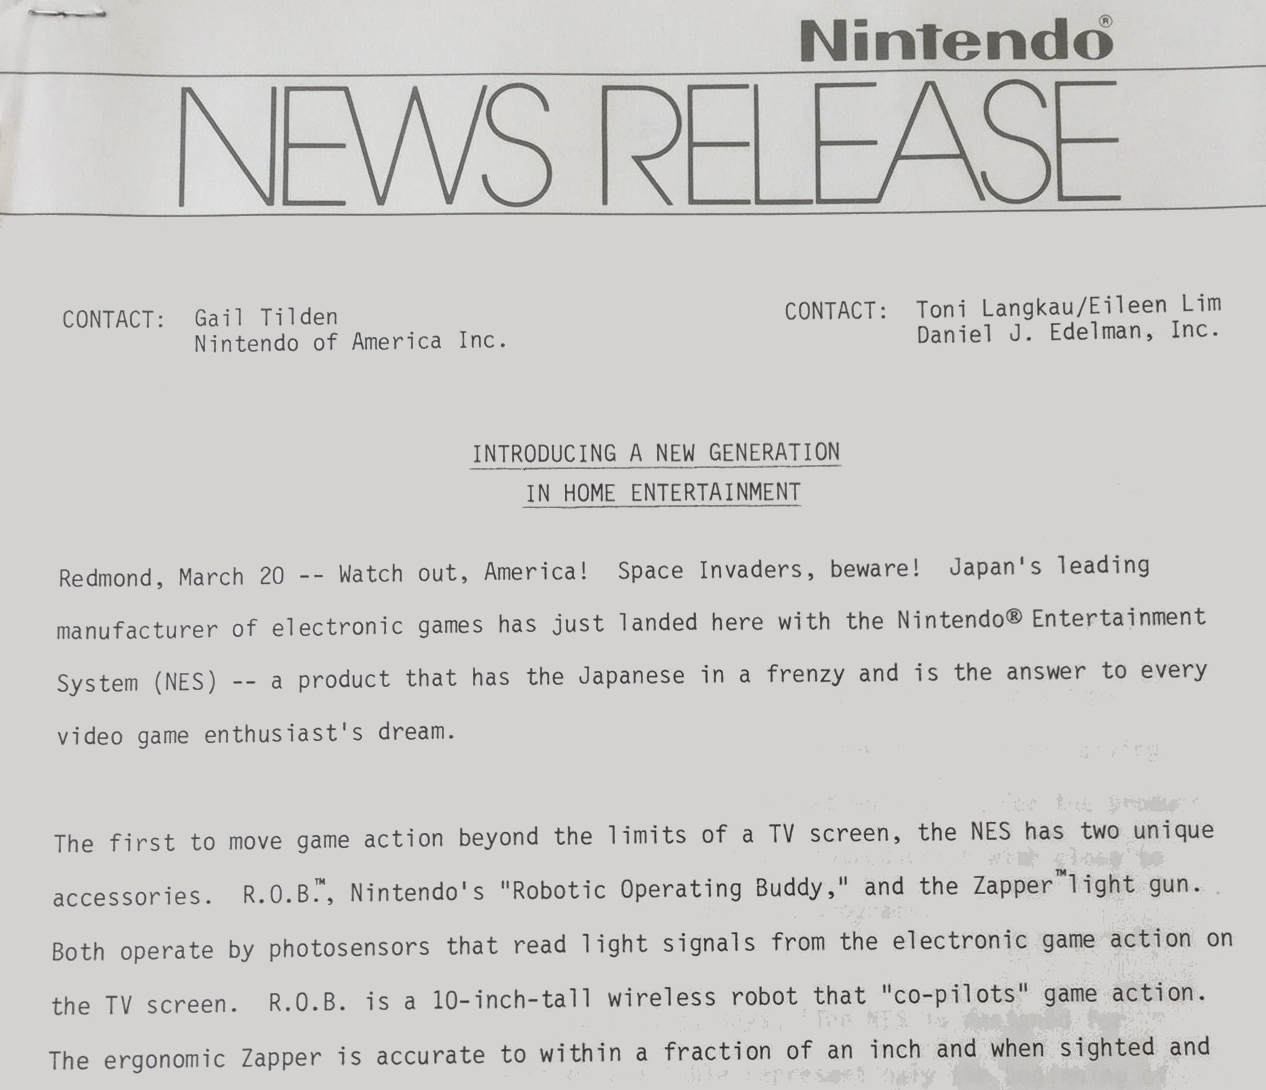 Here's how Nintendo announced the NES in North America almost 30 years ago